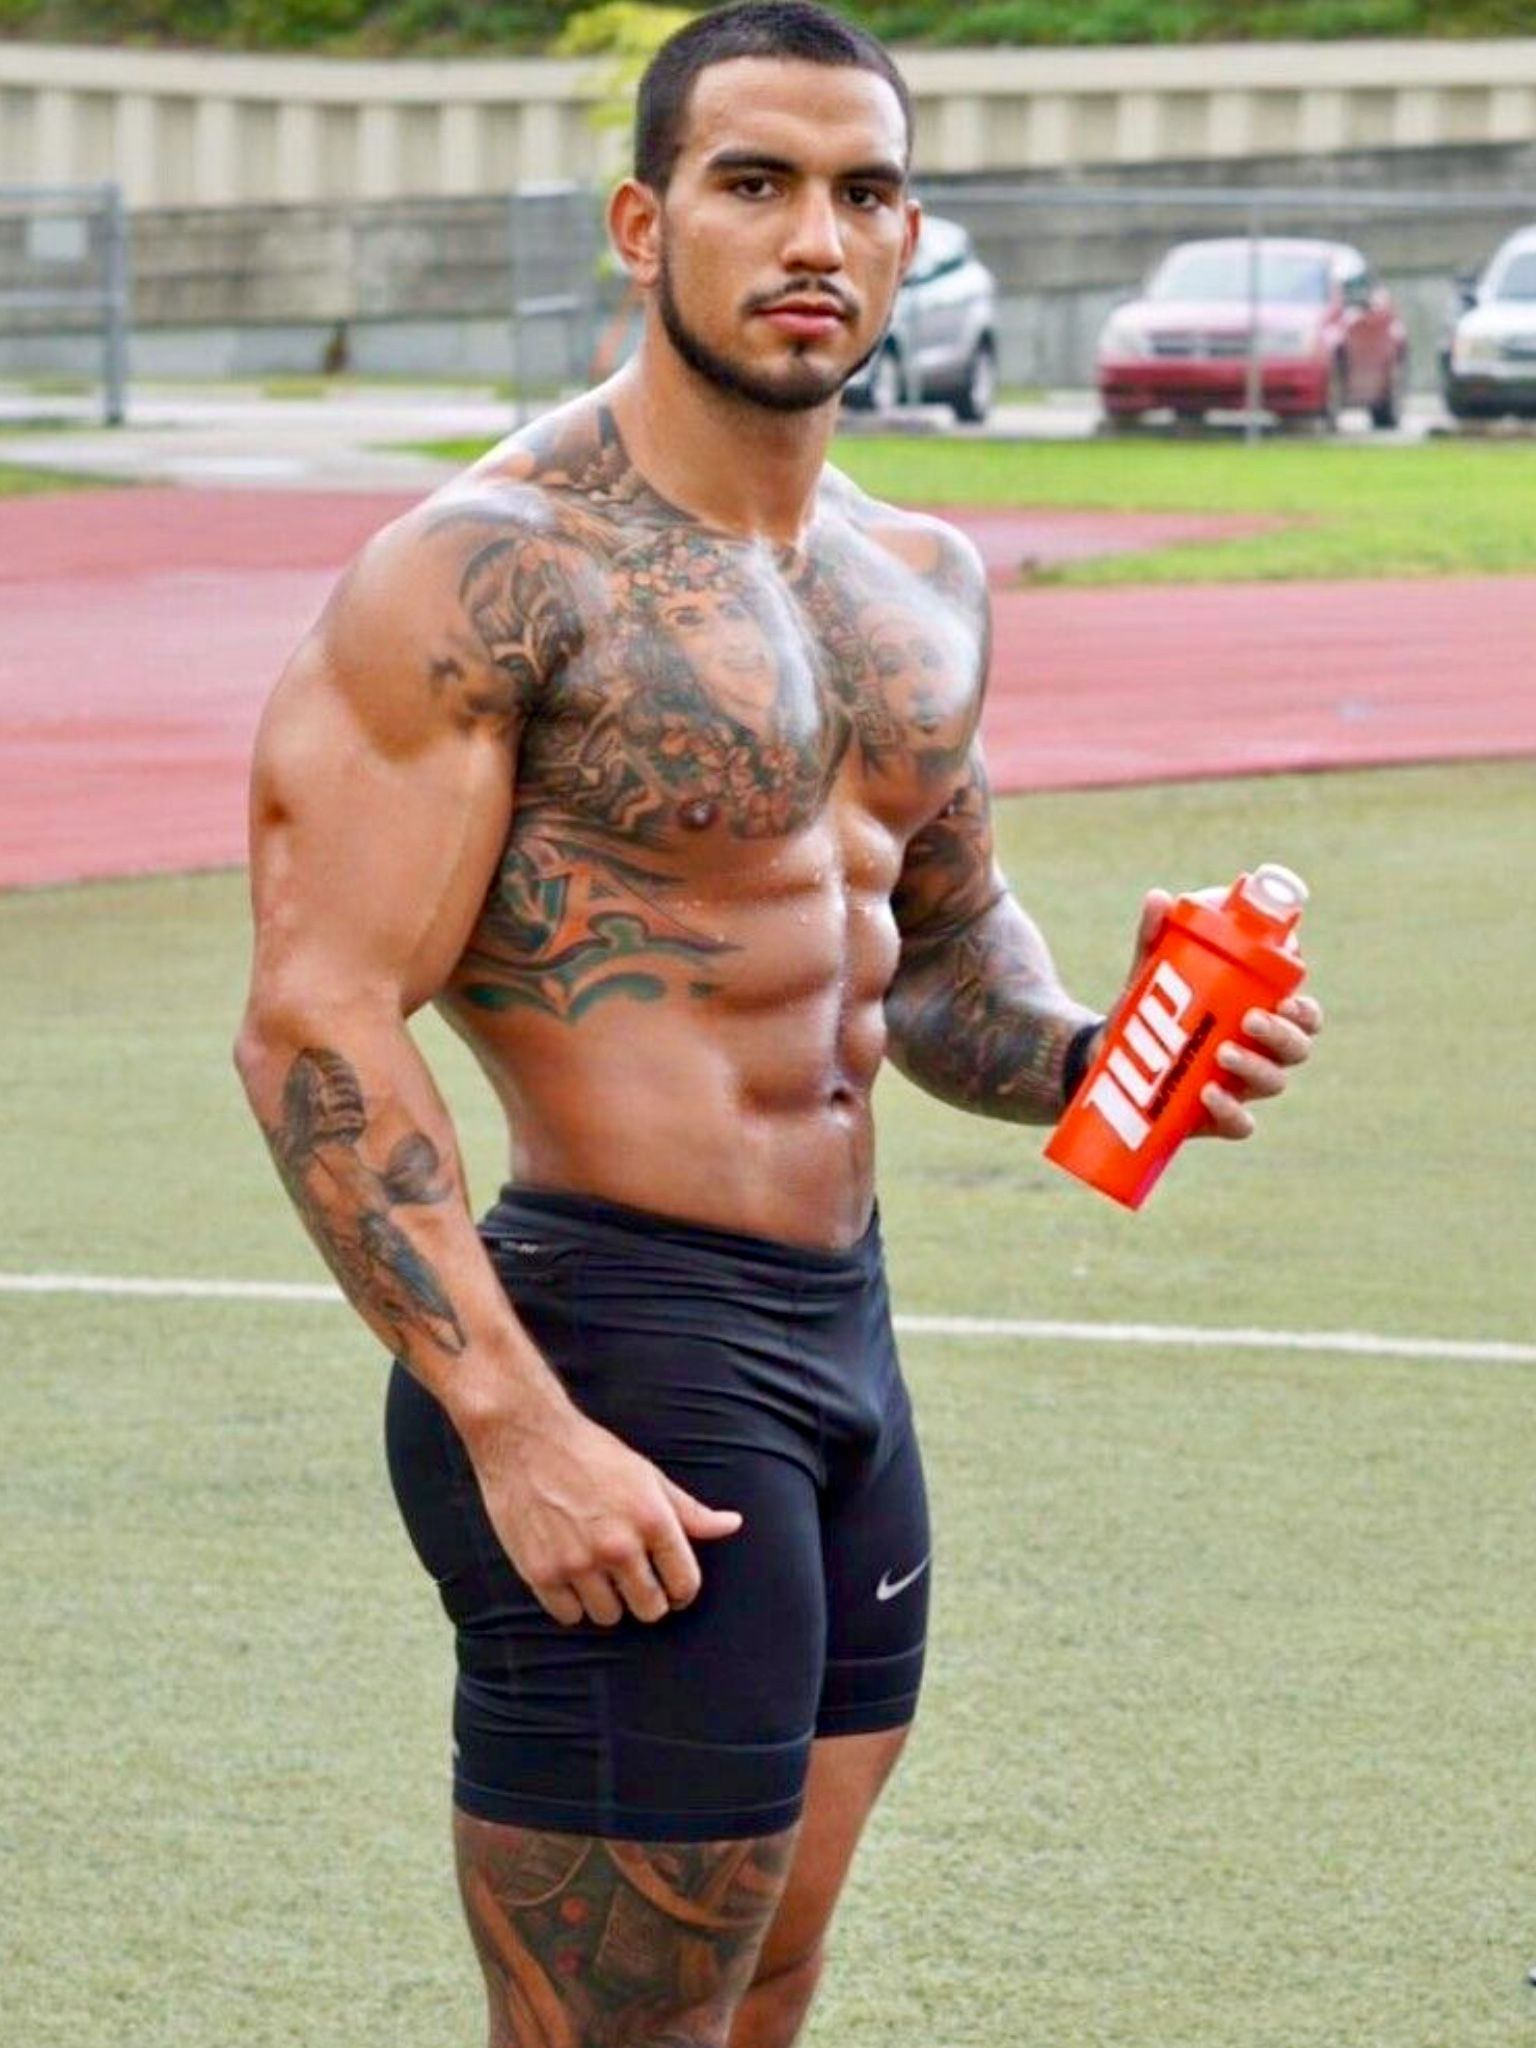 Best wedding dresses for athletic body type  Pin by Me Me on Ink  Pinterest  Sexy men Hot guys and Muscles